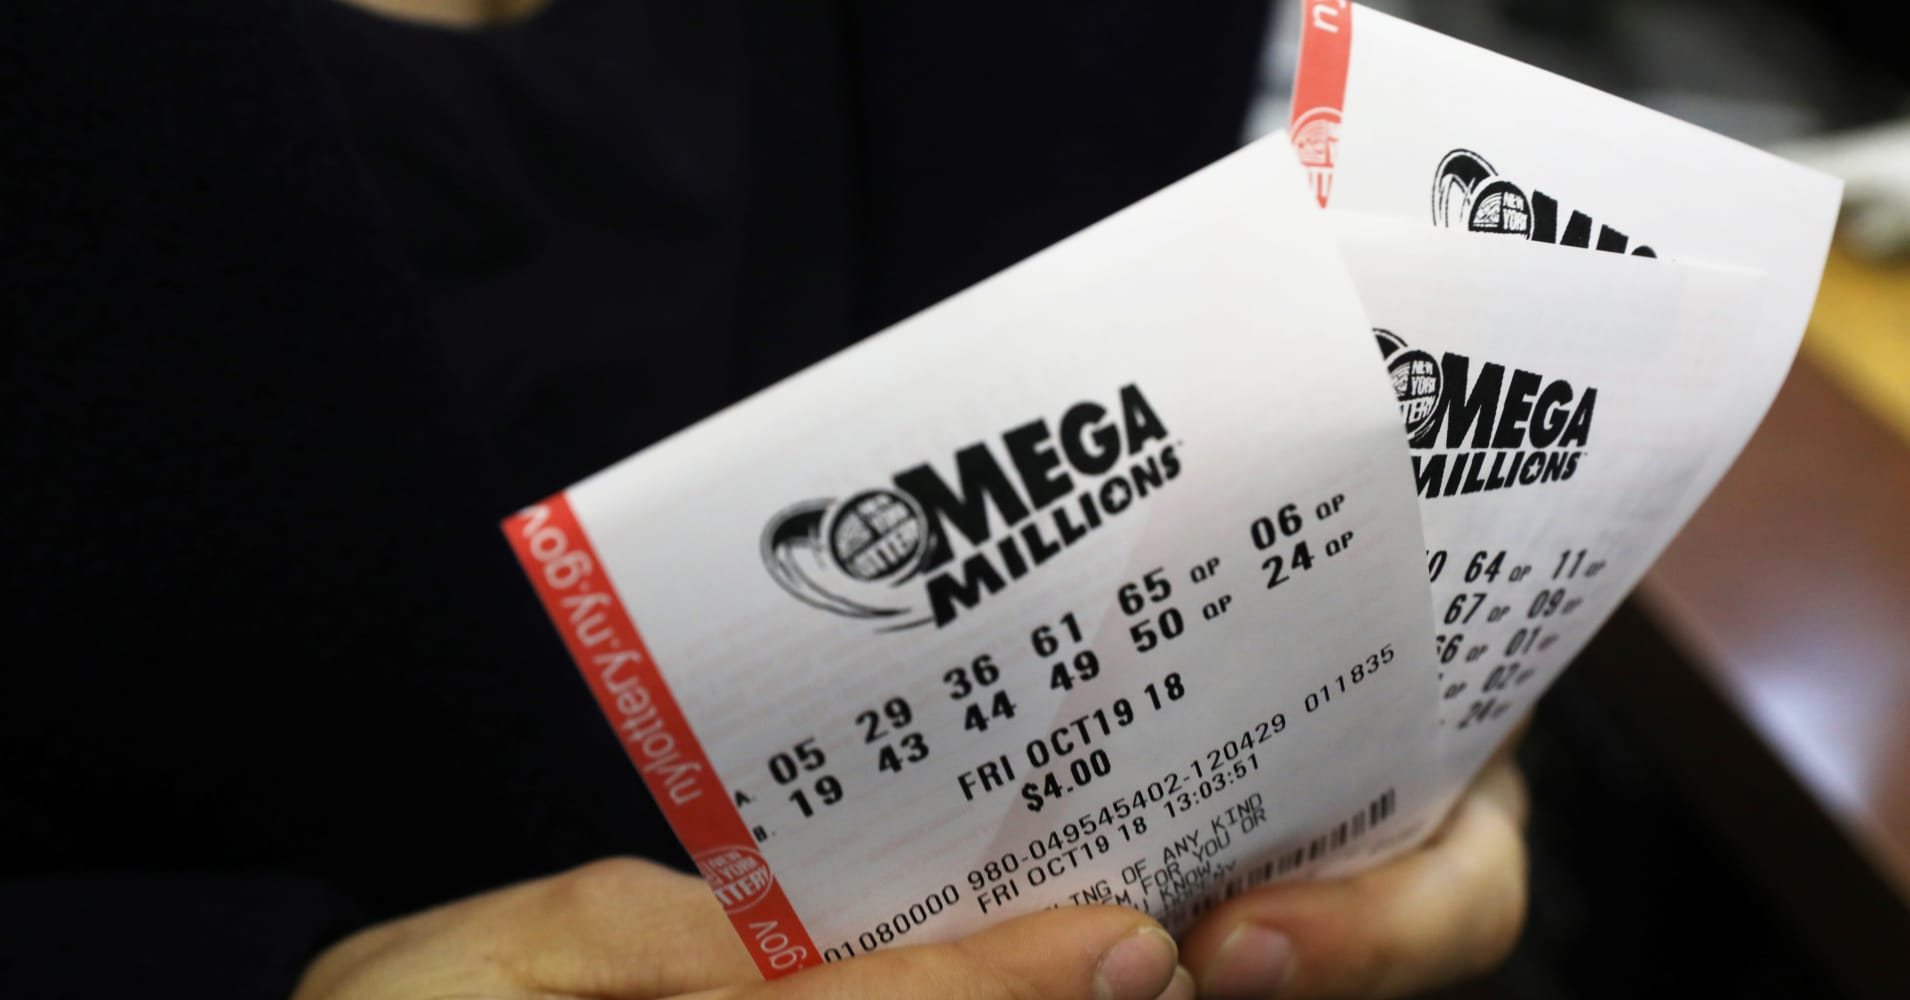 $1.5 billion Mega Millions lottery jackpot still unclaimed